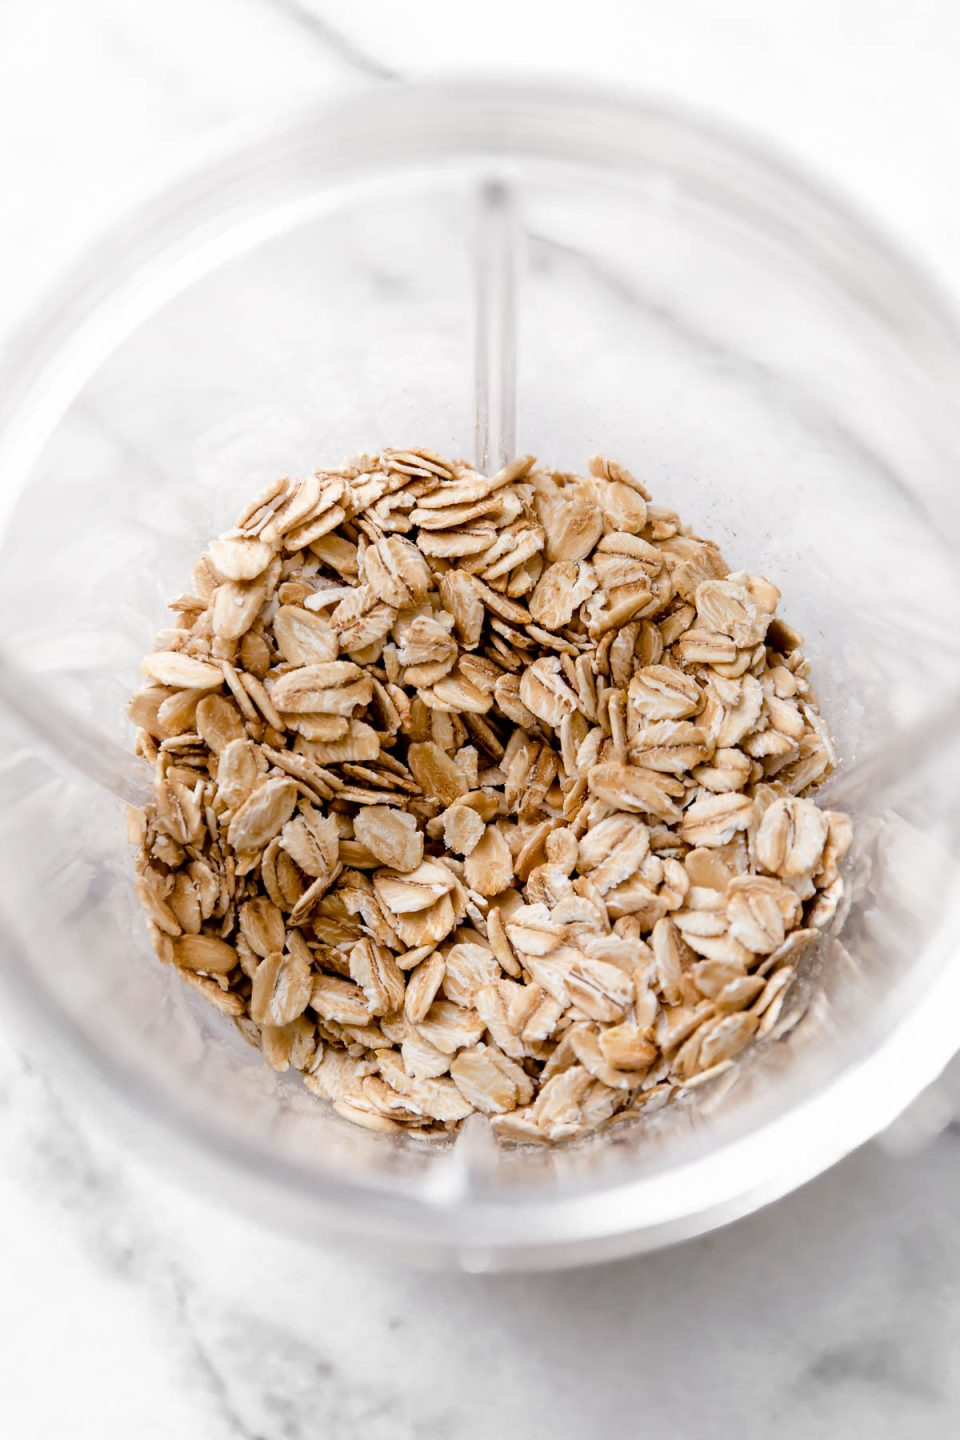 Rolled oats in a blender cup for making oat flour.